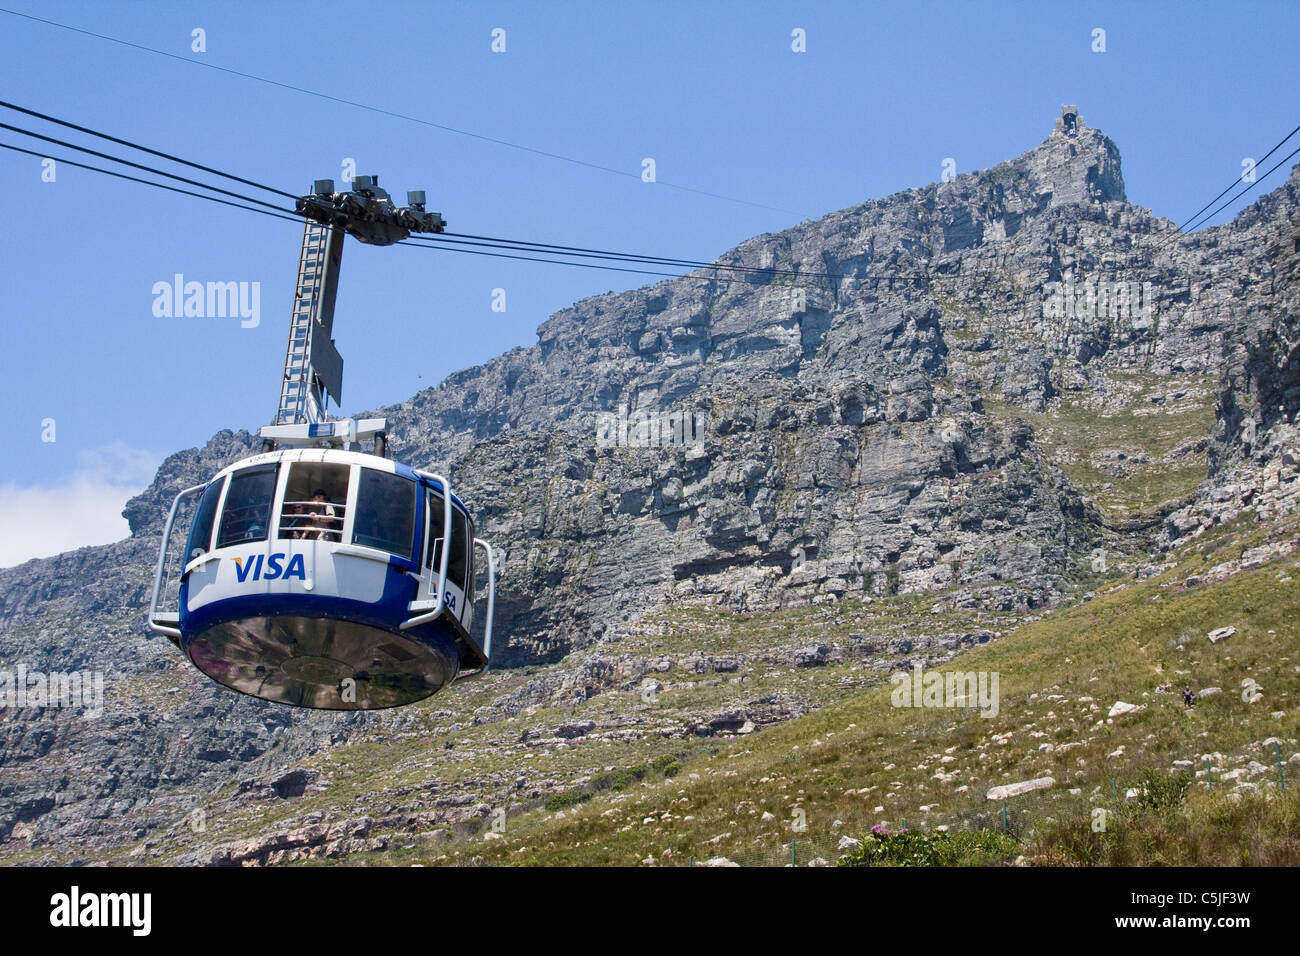 Cable way to table Top Mountain - Stock Image